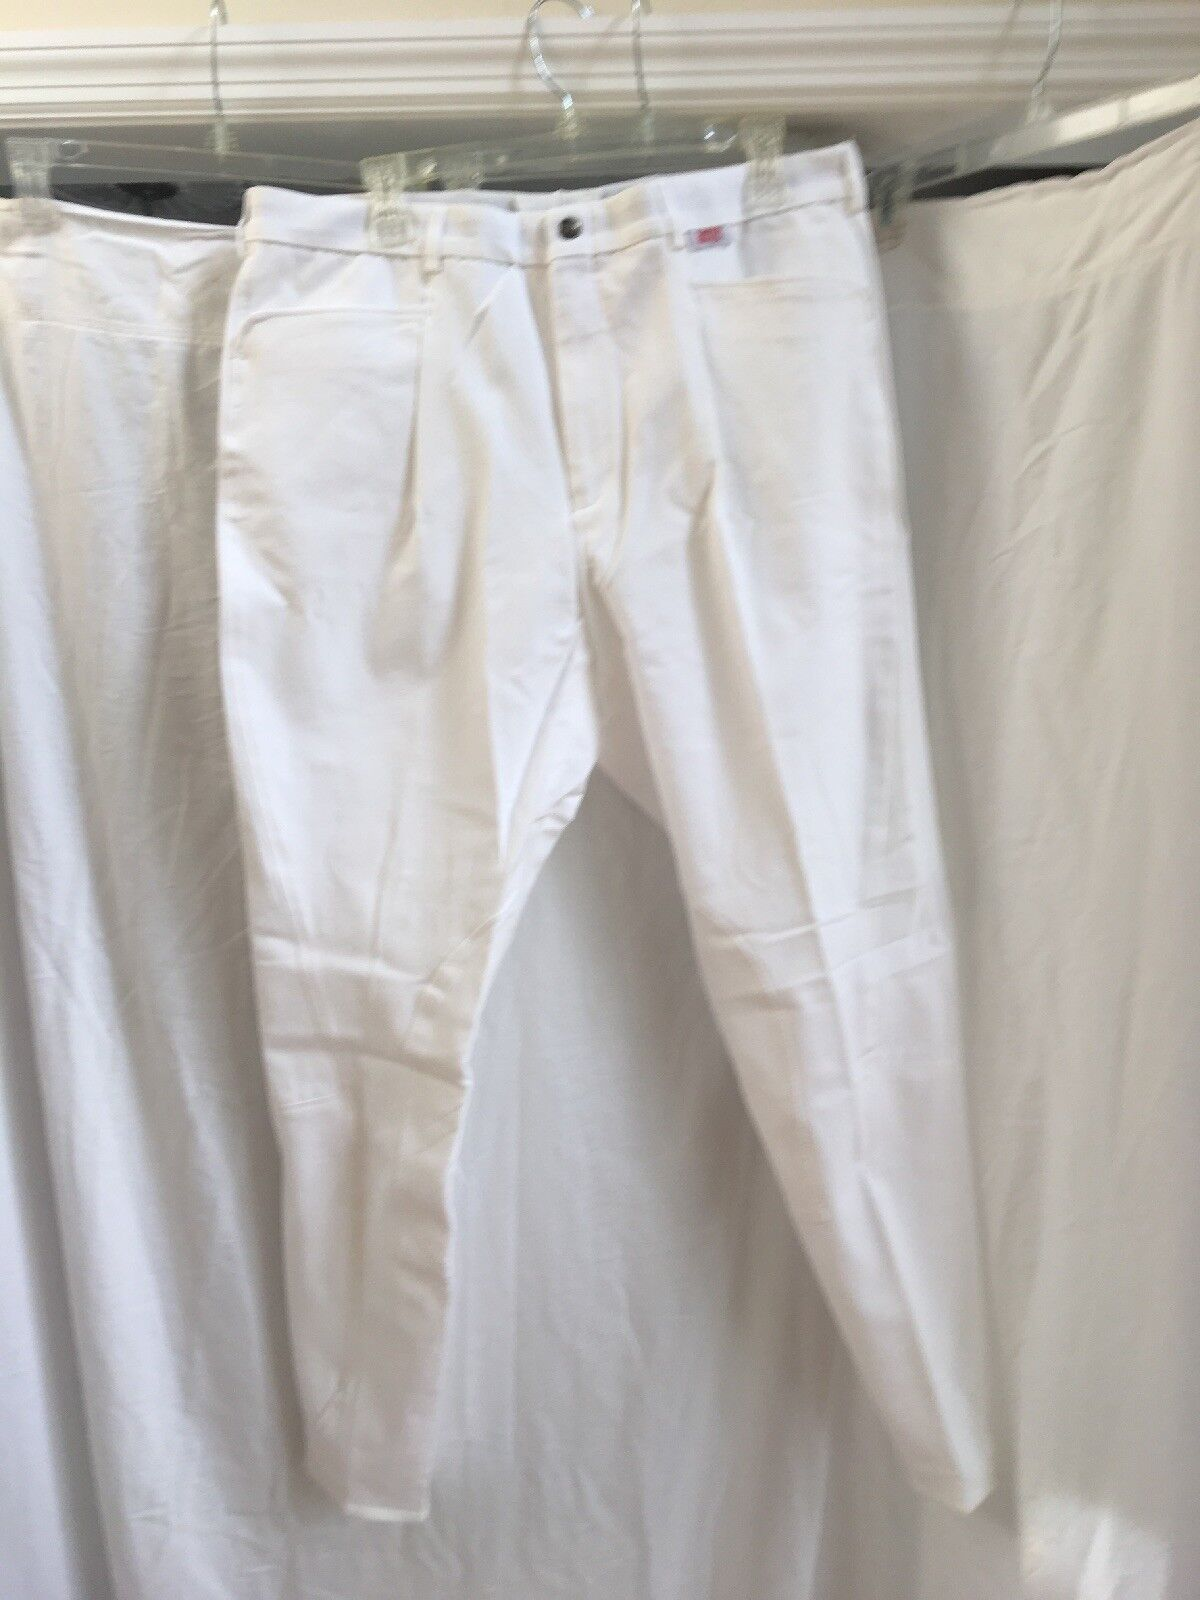 Men's Breeches By Sarm Hippque,  color White Size 38, 40 NWT